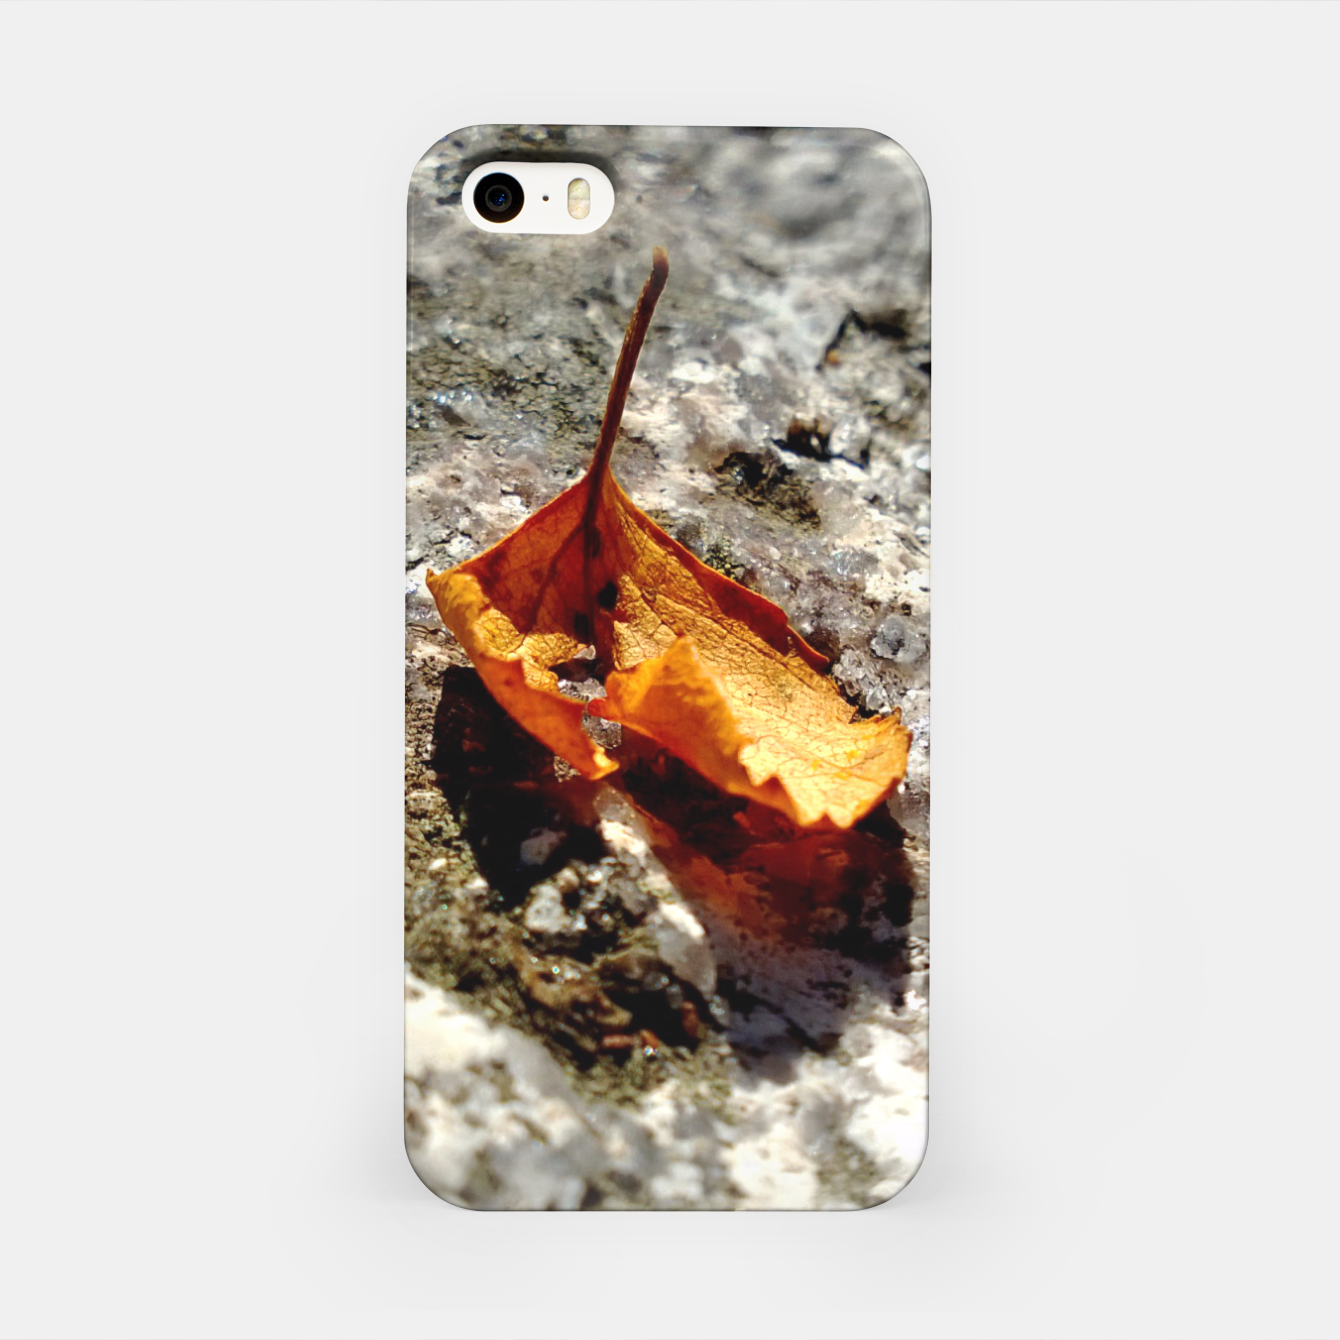 Image of LeafOnRock iPhone Case - Live Heroes